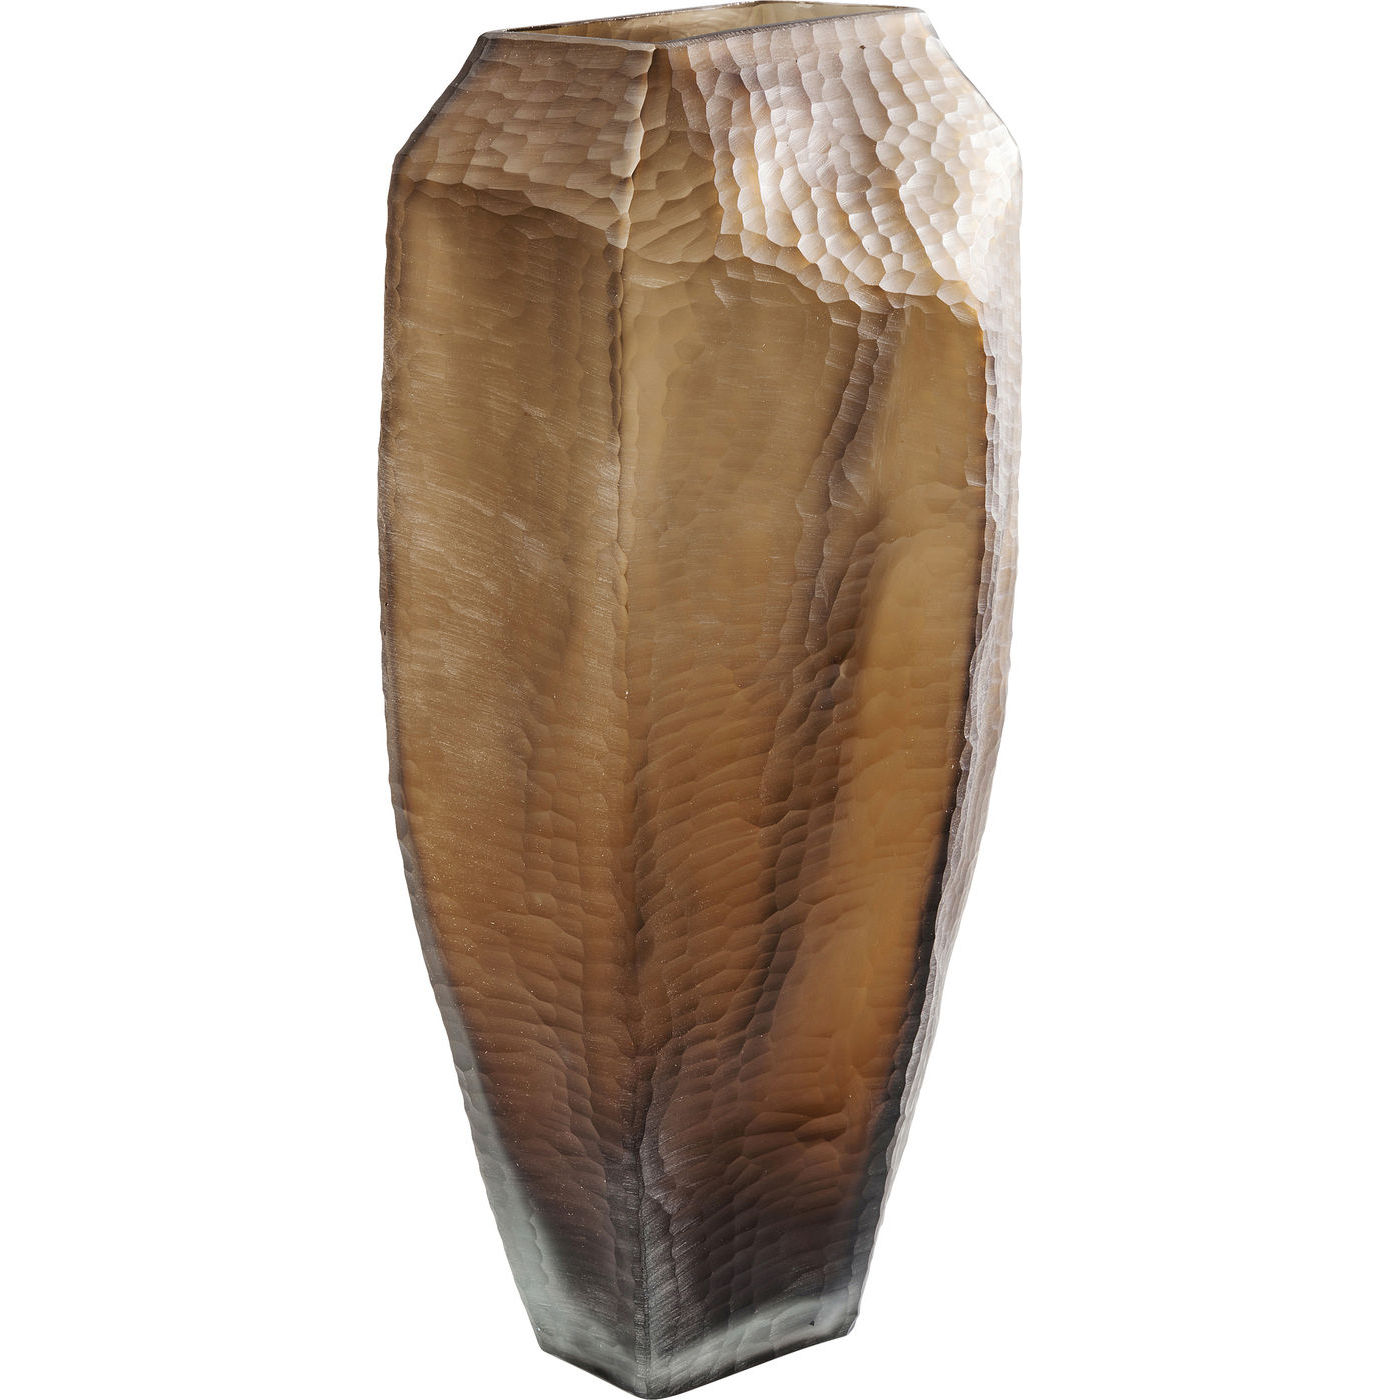 Image of   KARE DESIGN Bieco Vase